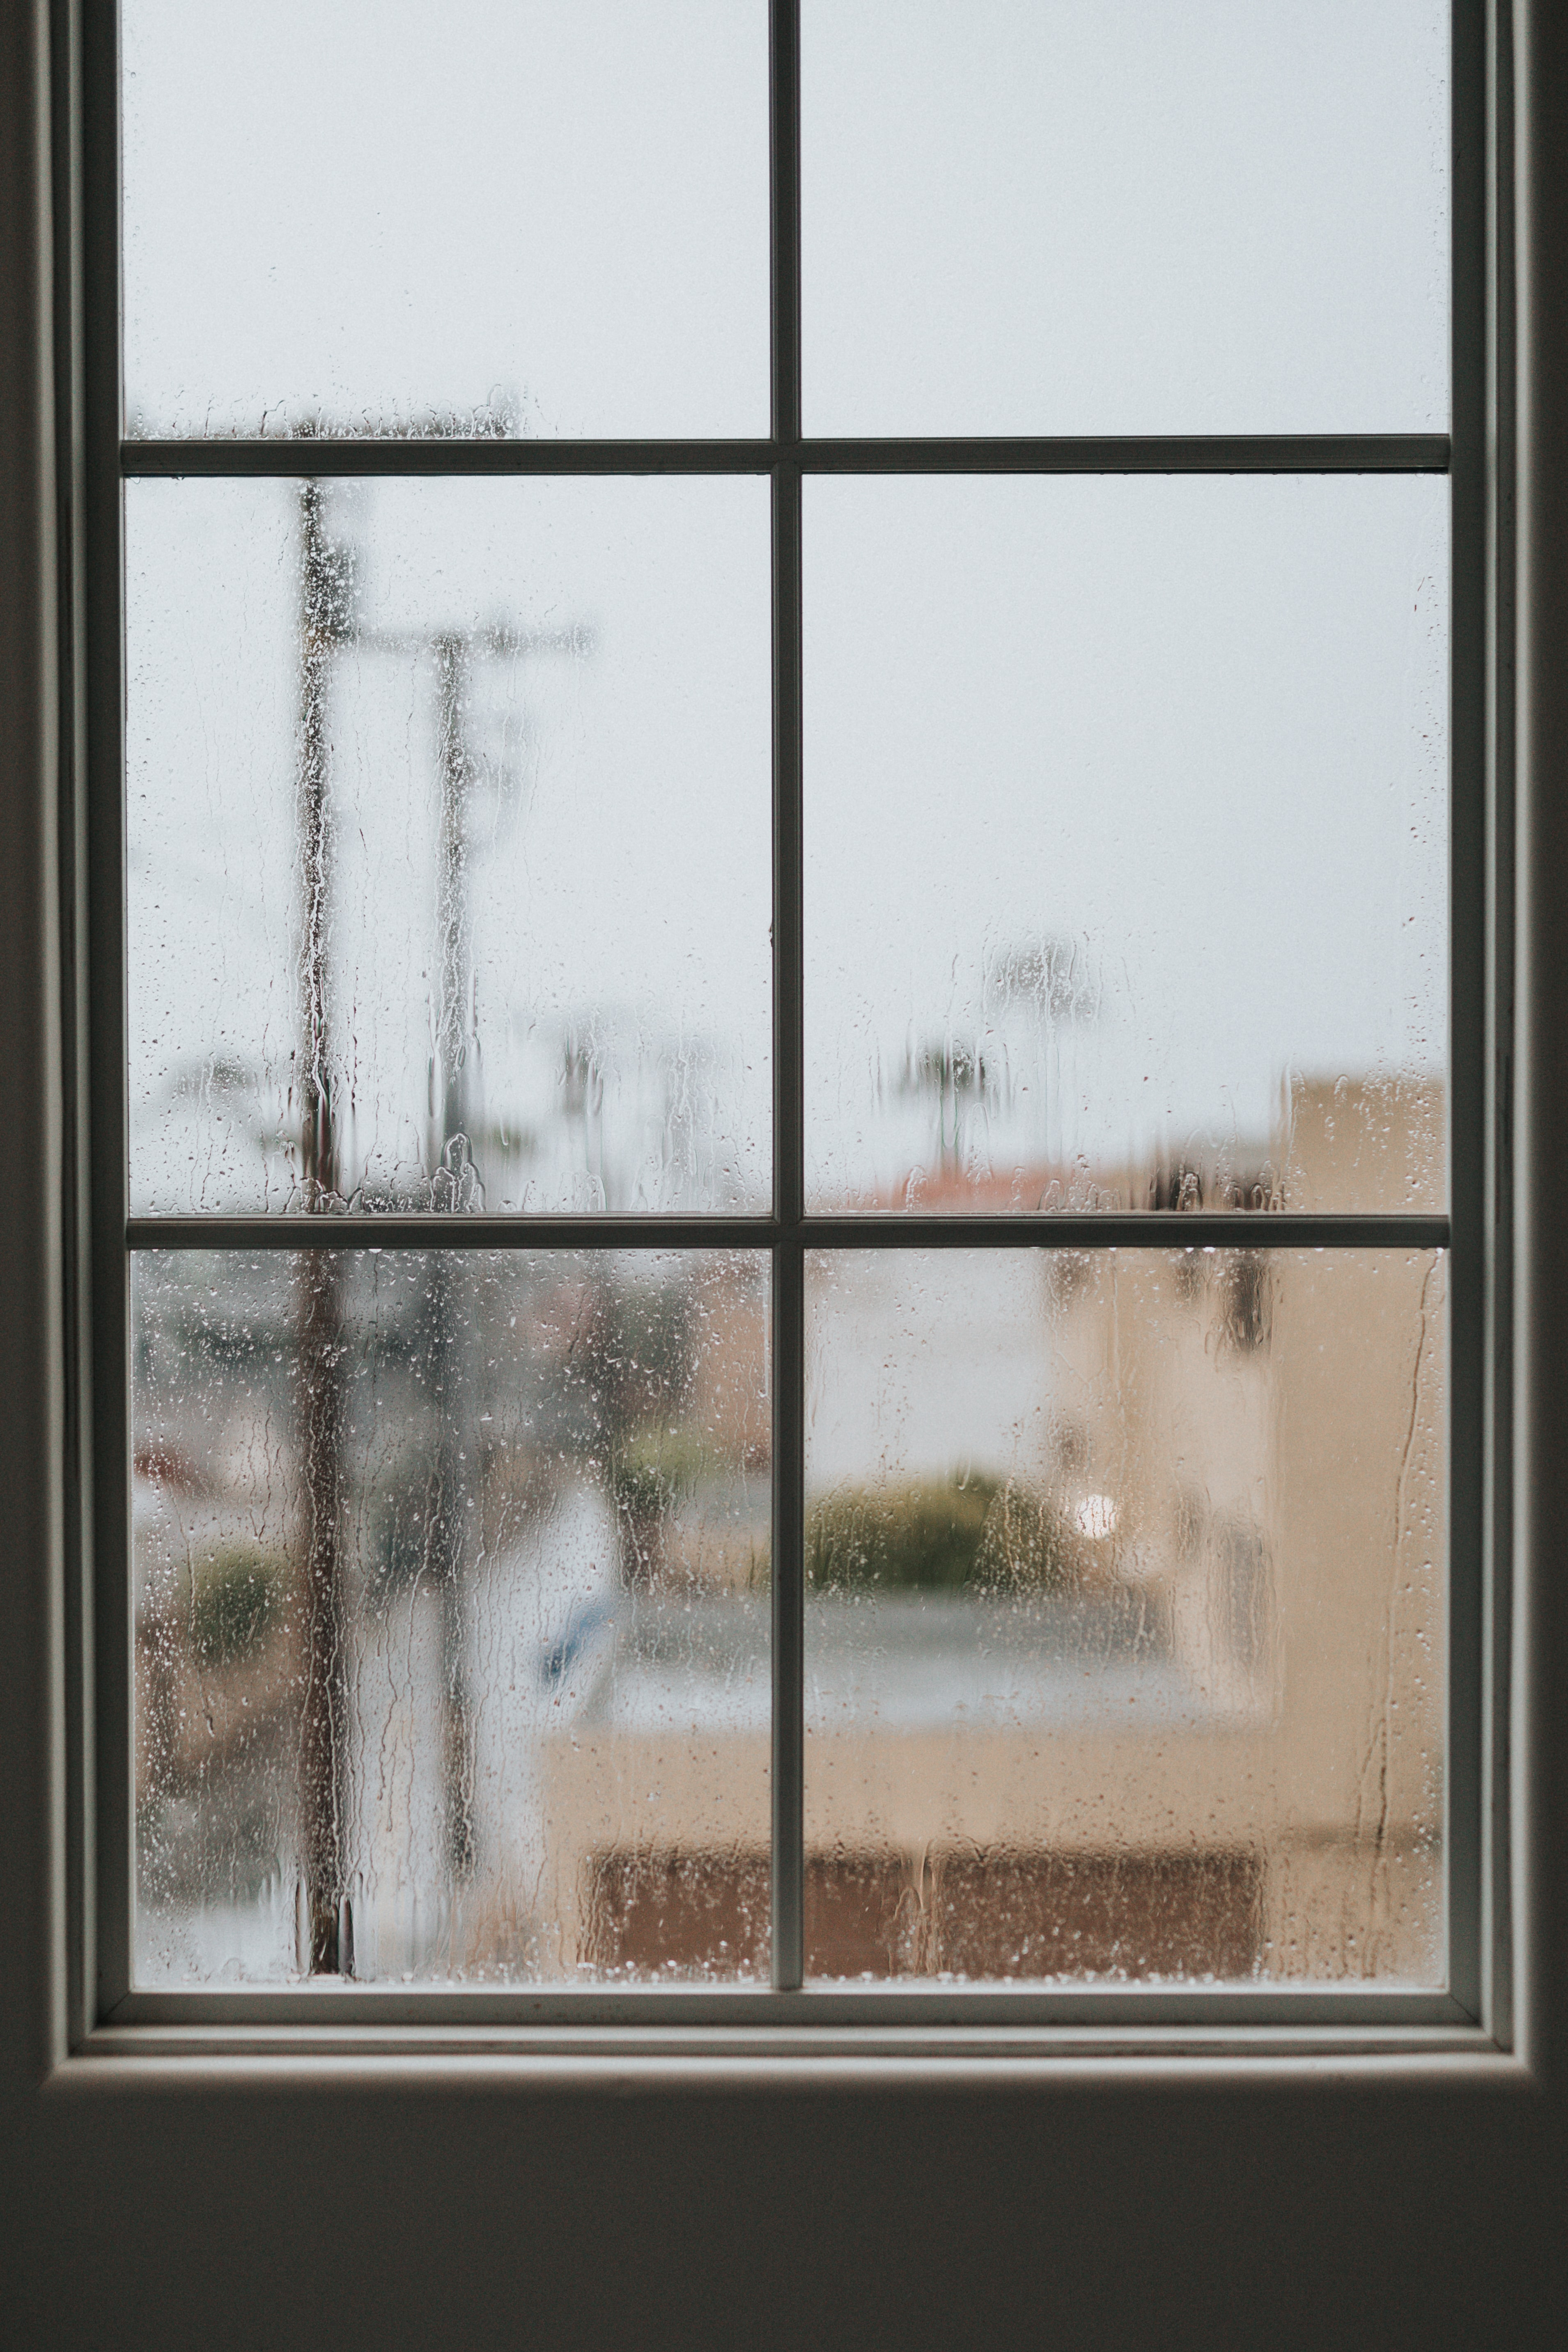 151685 download wallpaper Miscellanea, Miscellaneous, Window, Drops, Glass, Frame screensavers and pictures for free